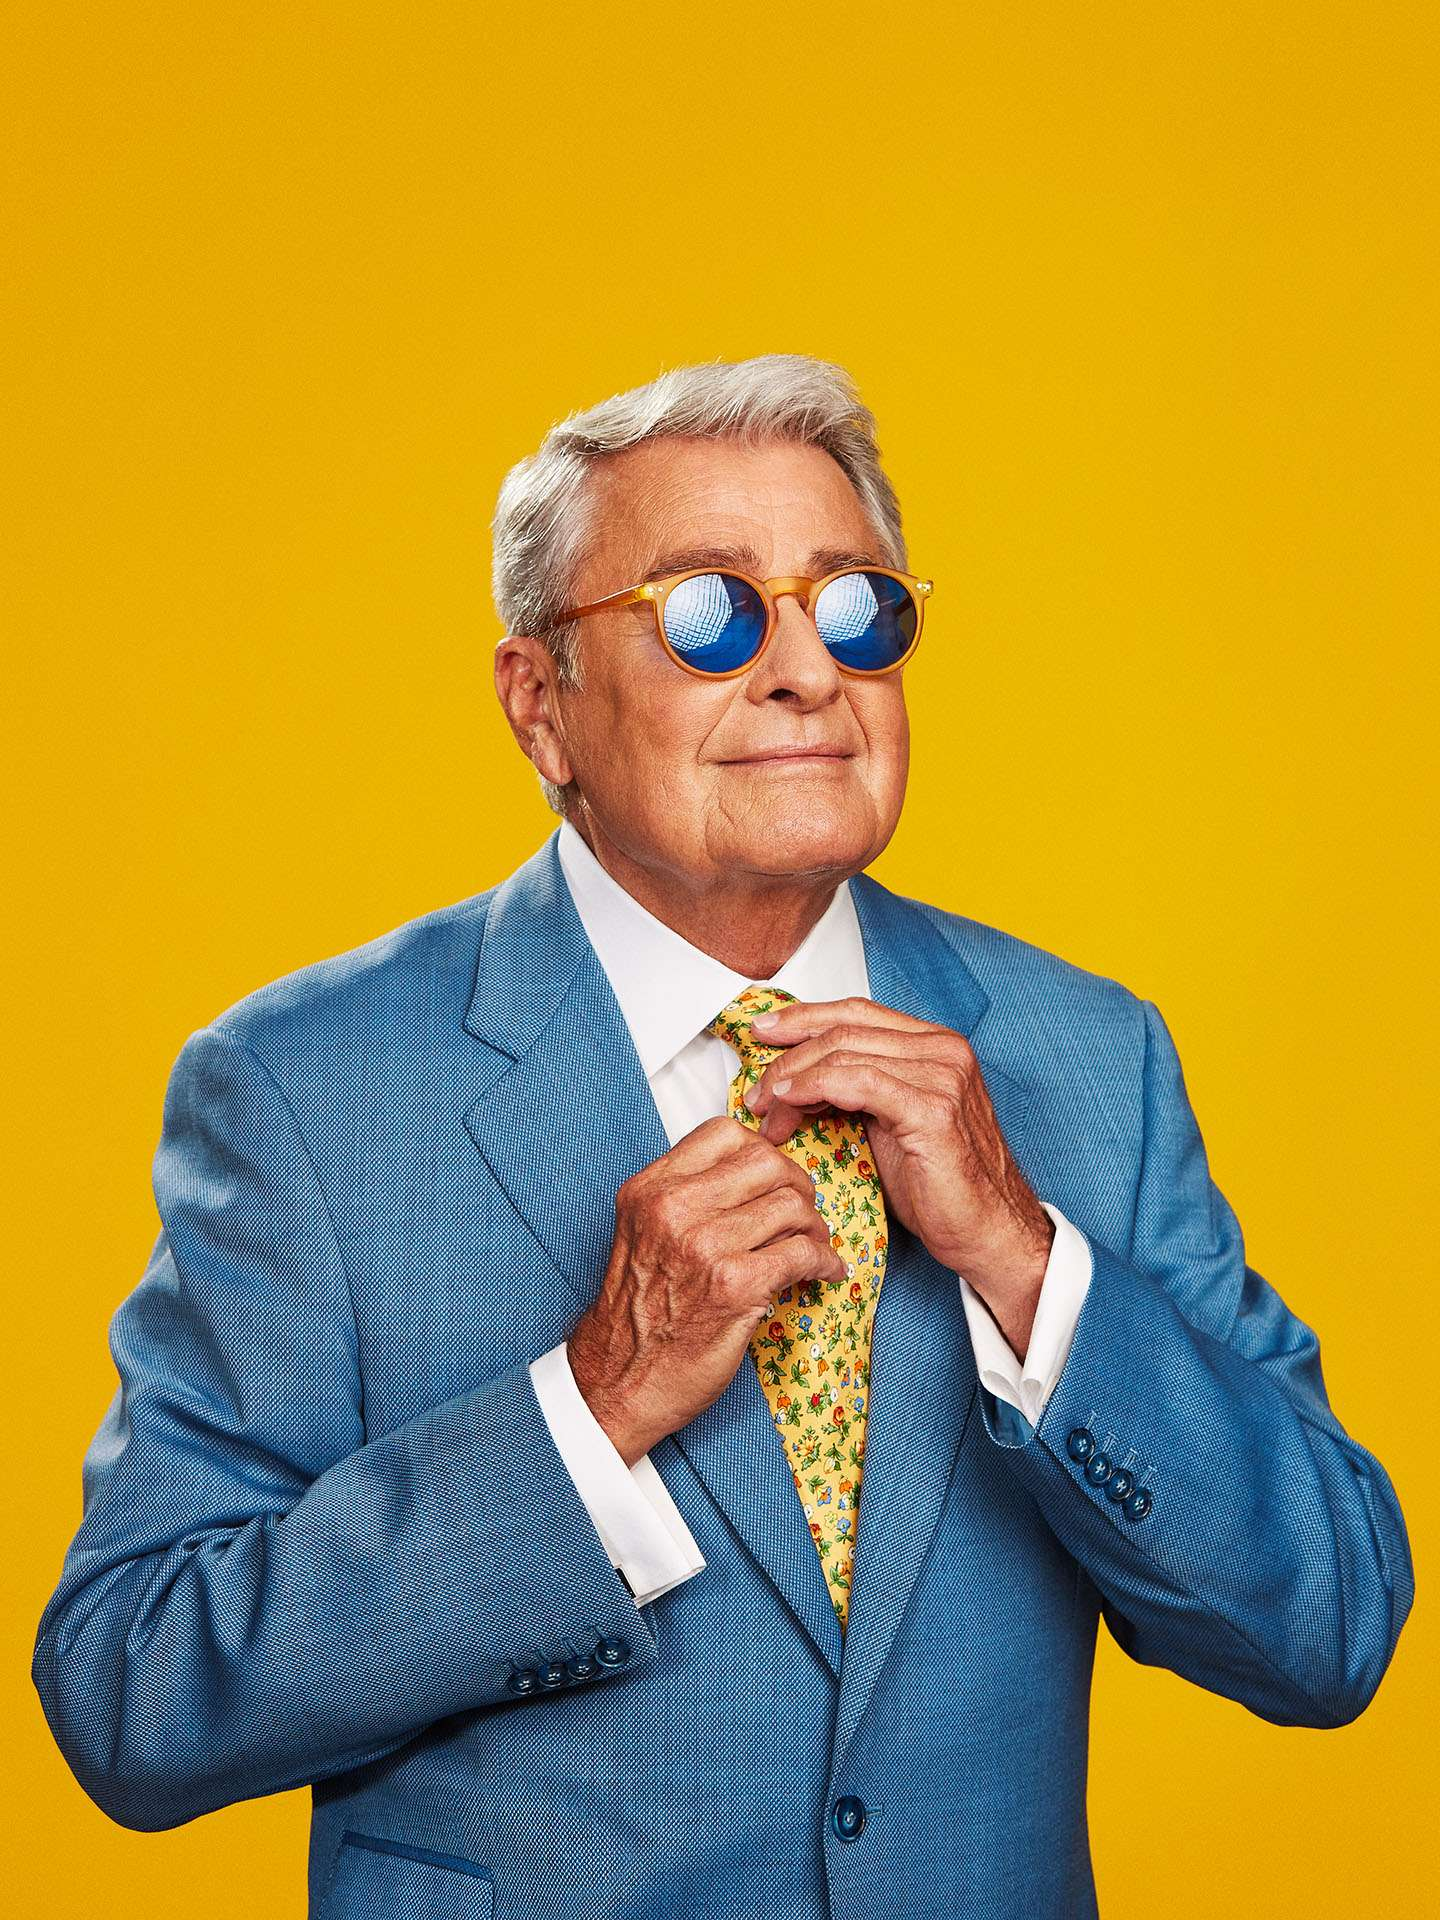 portrait of Michel Louvain adjusting his tie in light blue costume on bright yellow background by Jocelyn Michel for Voir magazine